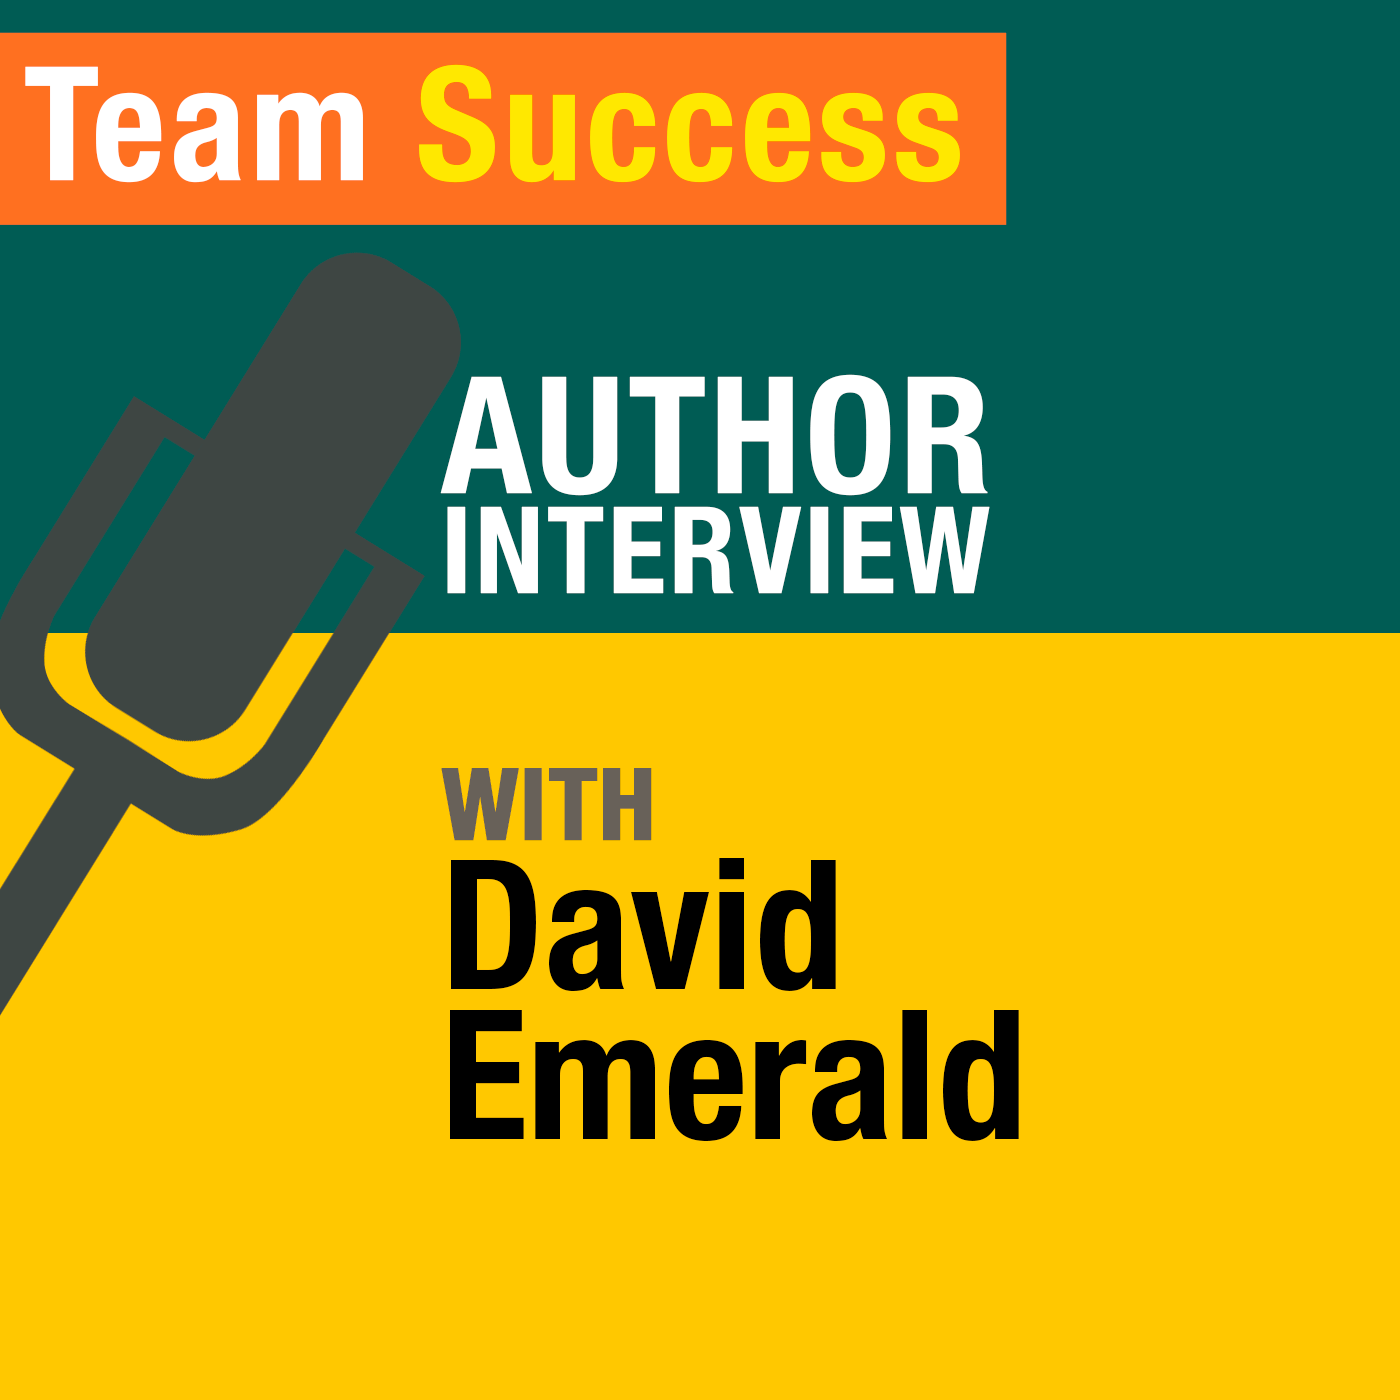 Author Interview with David Emerald